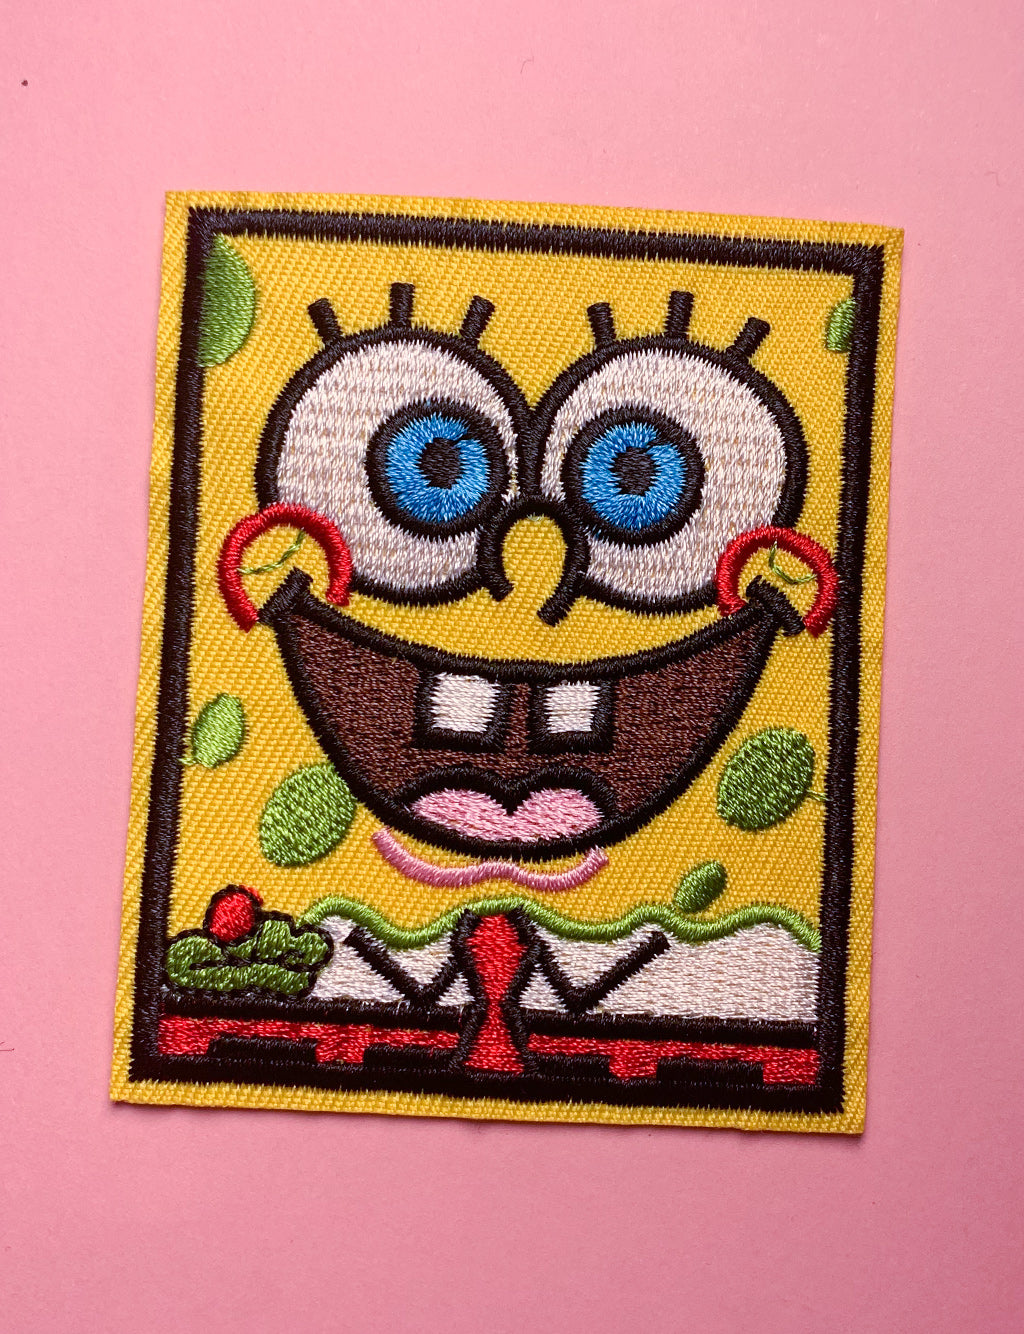 SPONGE BOB SQUAREPANTS SQUARE PATCH